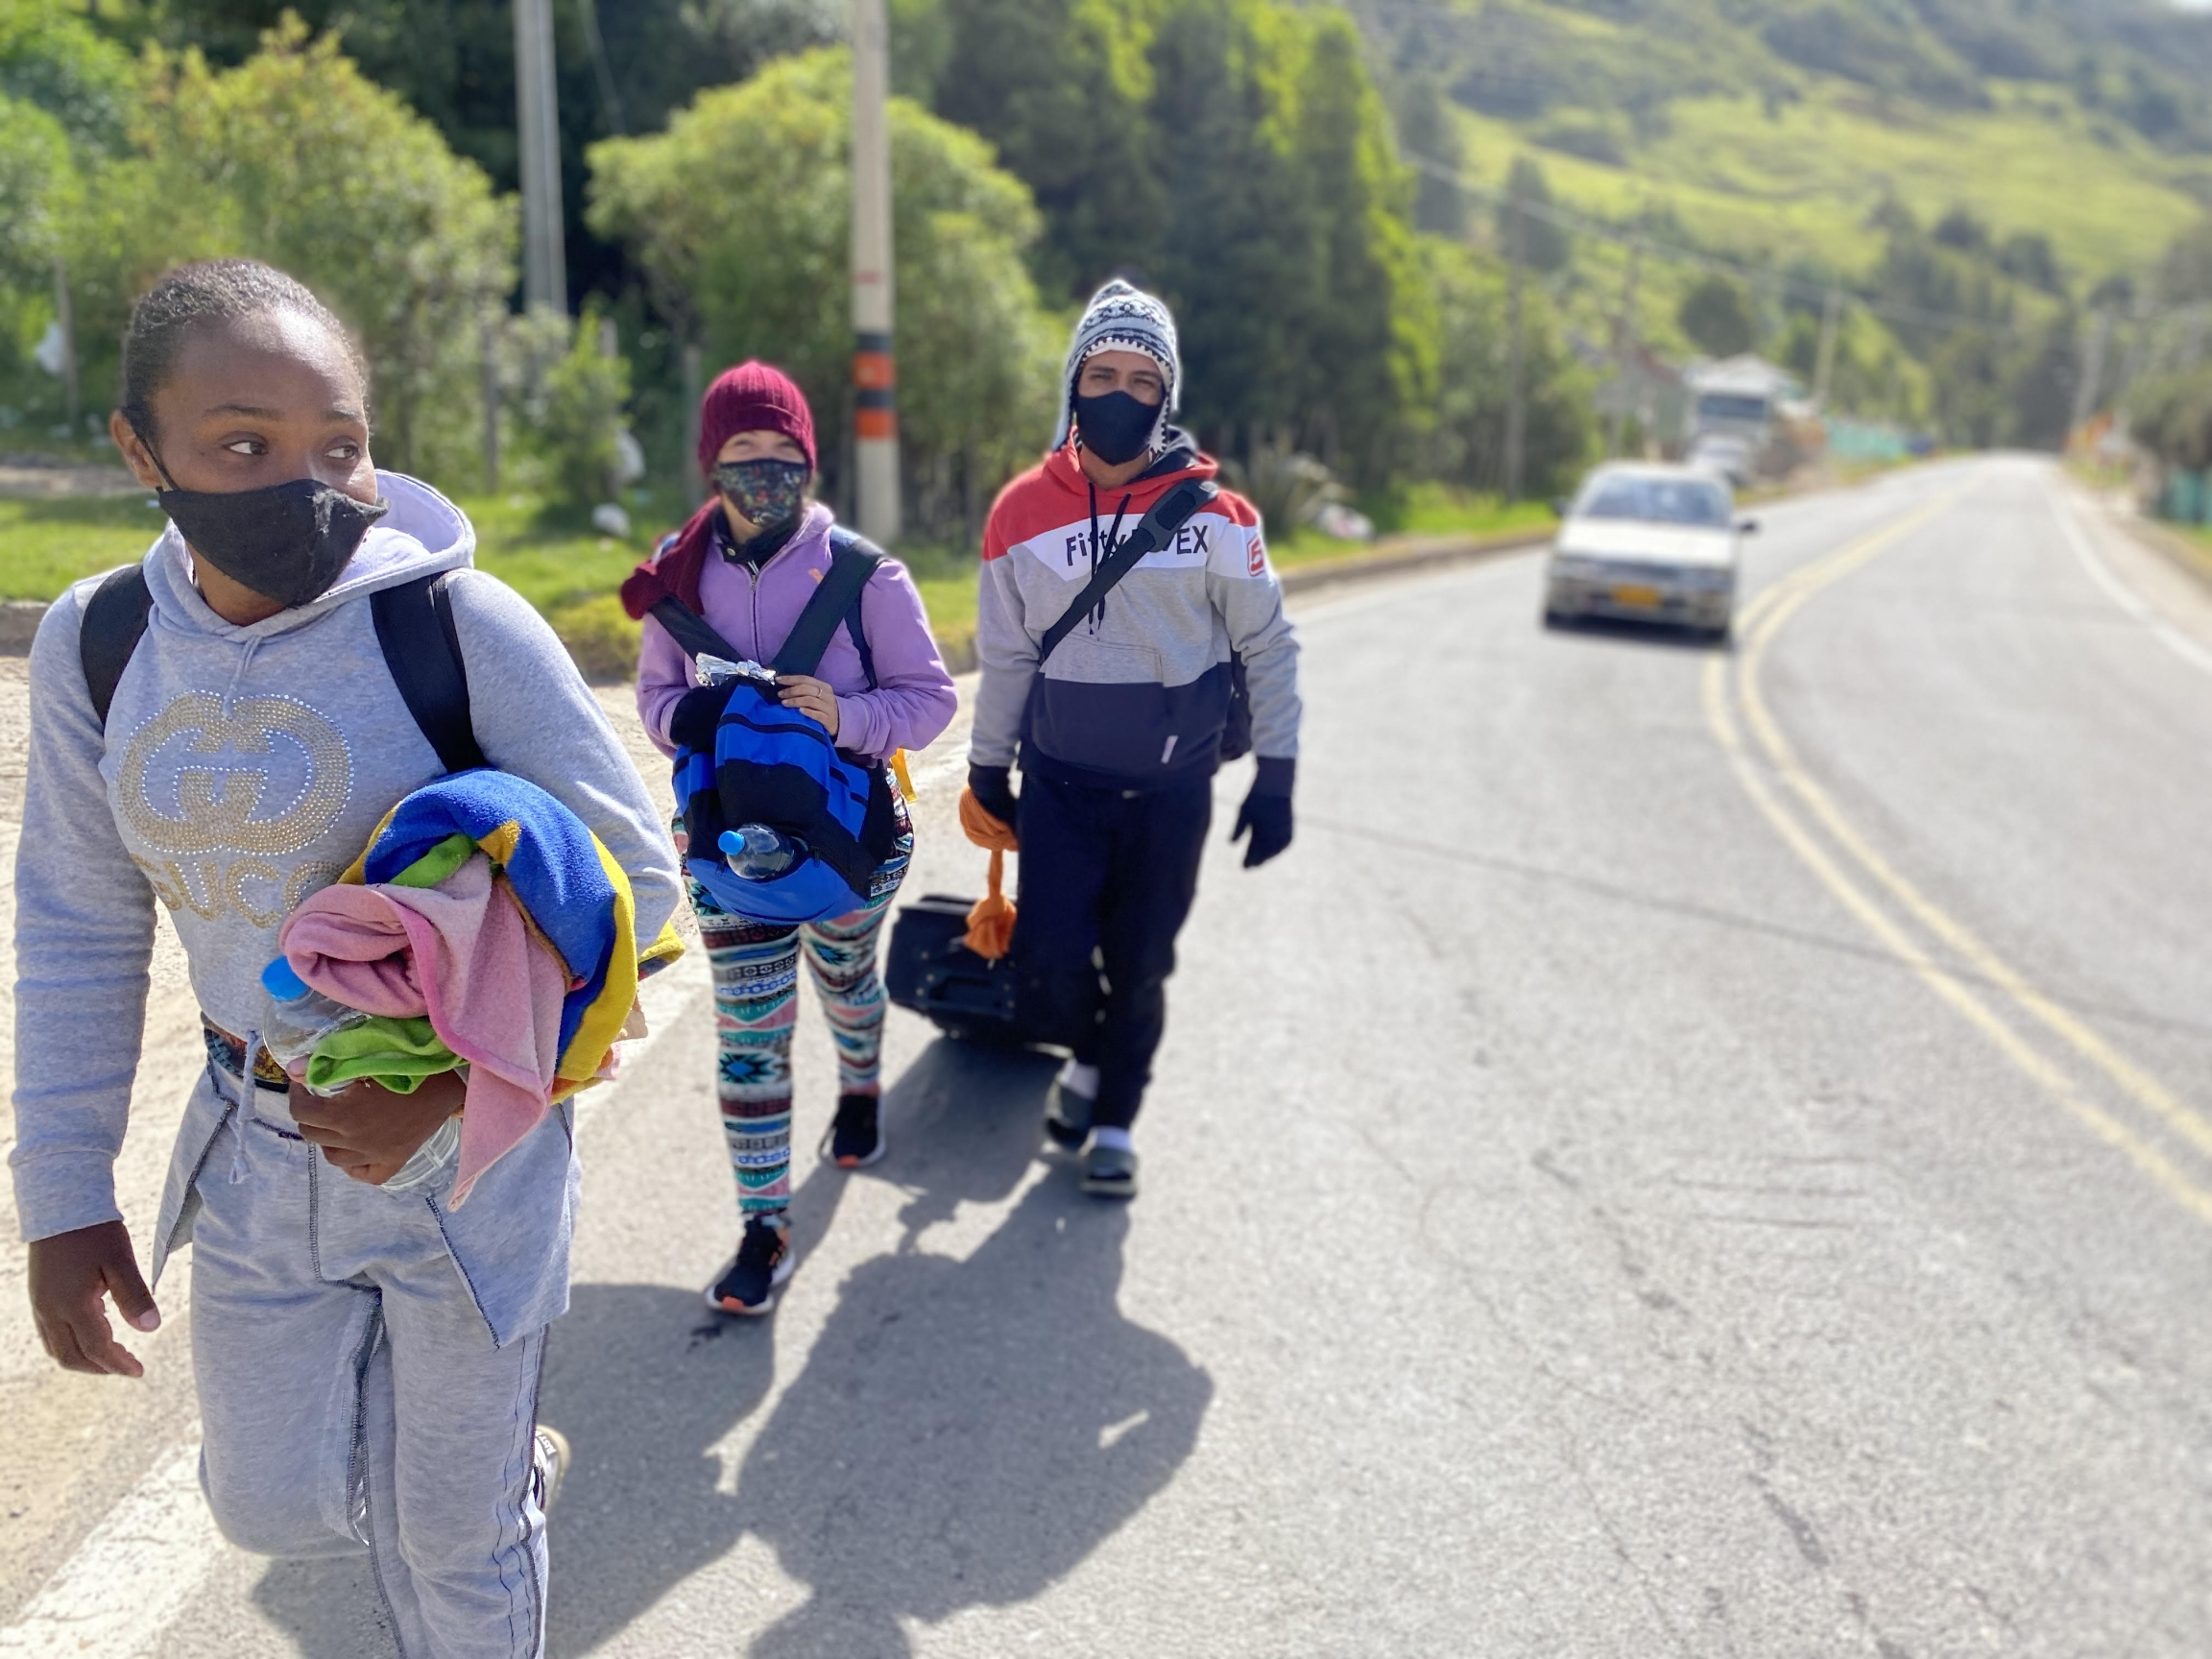 Daniel Arevalo drags his suitcase as he leaves the Colombian town of Pamplona on Oct 2. Arevalo had been on the road for two weeks and was trying to make it to Cali, Colombia, where he hoped to find construction work.